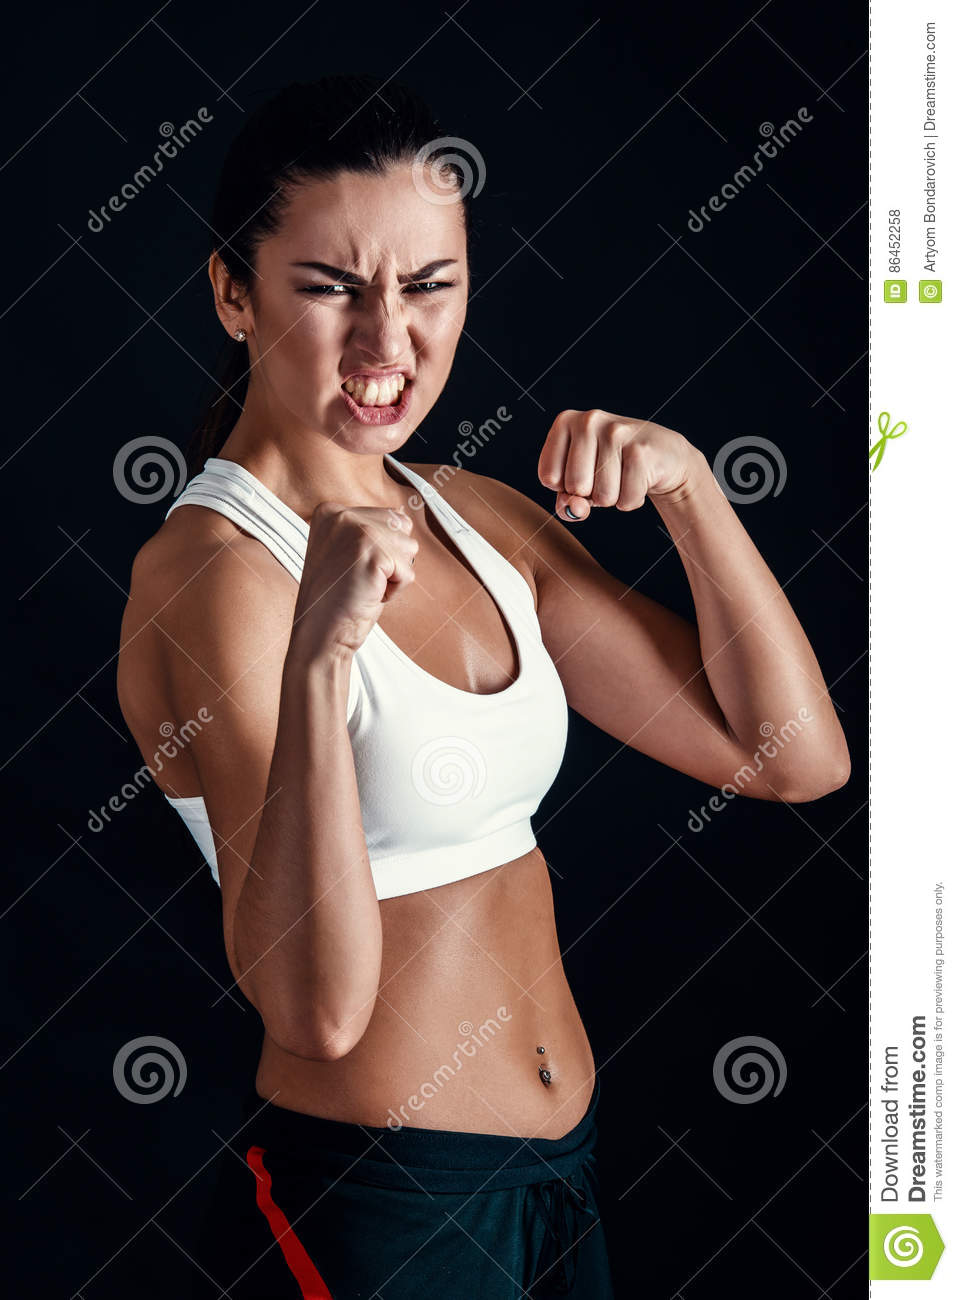 eb97db5ed5ae6 Angry Fitness Girl Ready For Fight On Black Background. Stock Photo ...